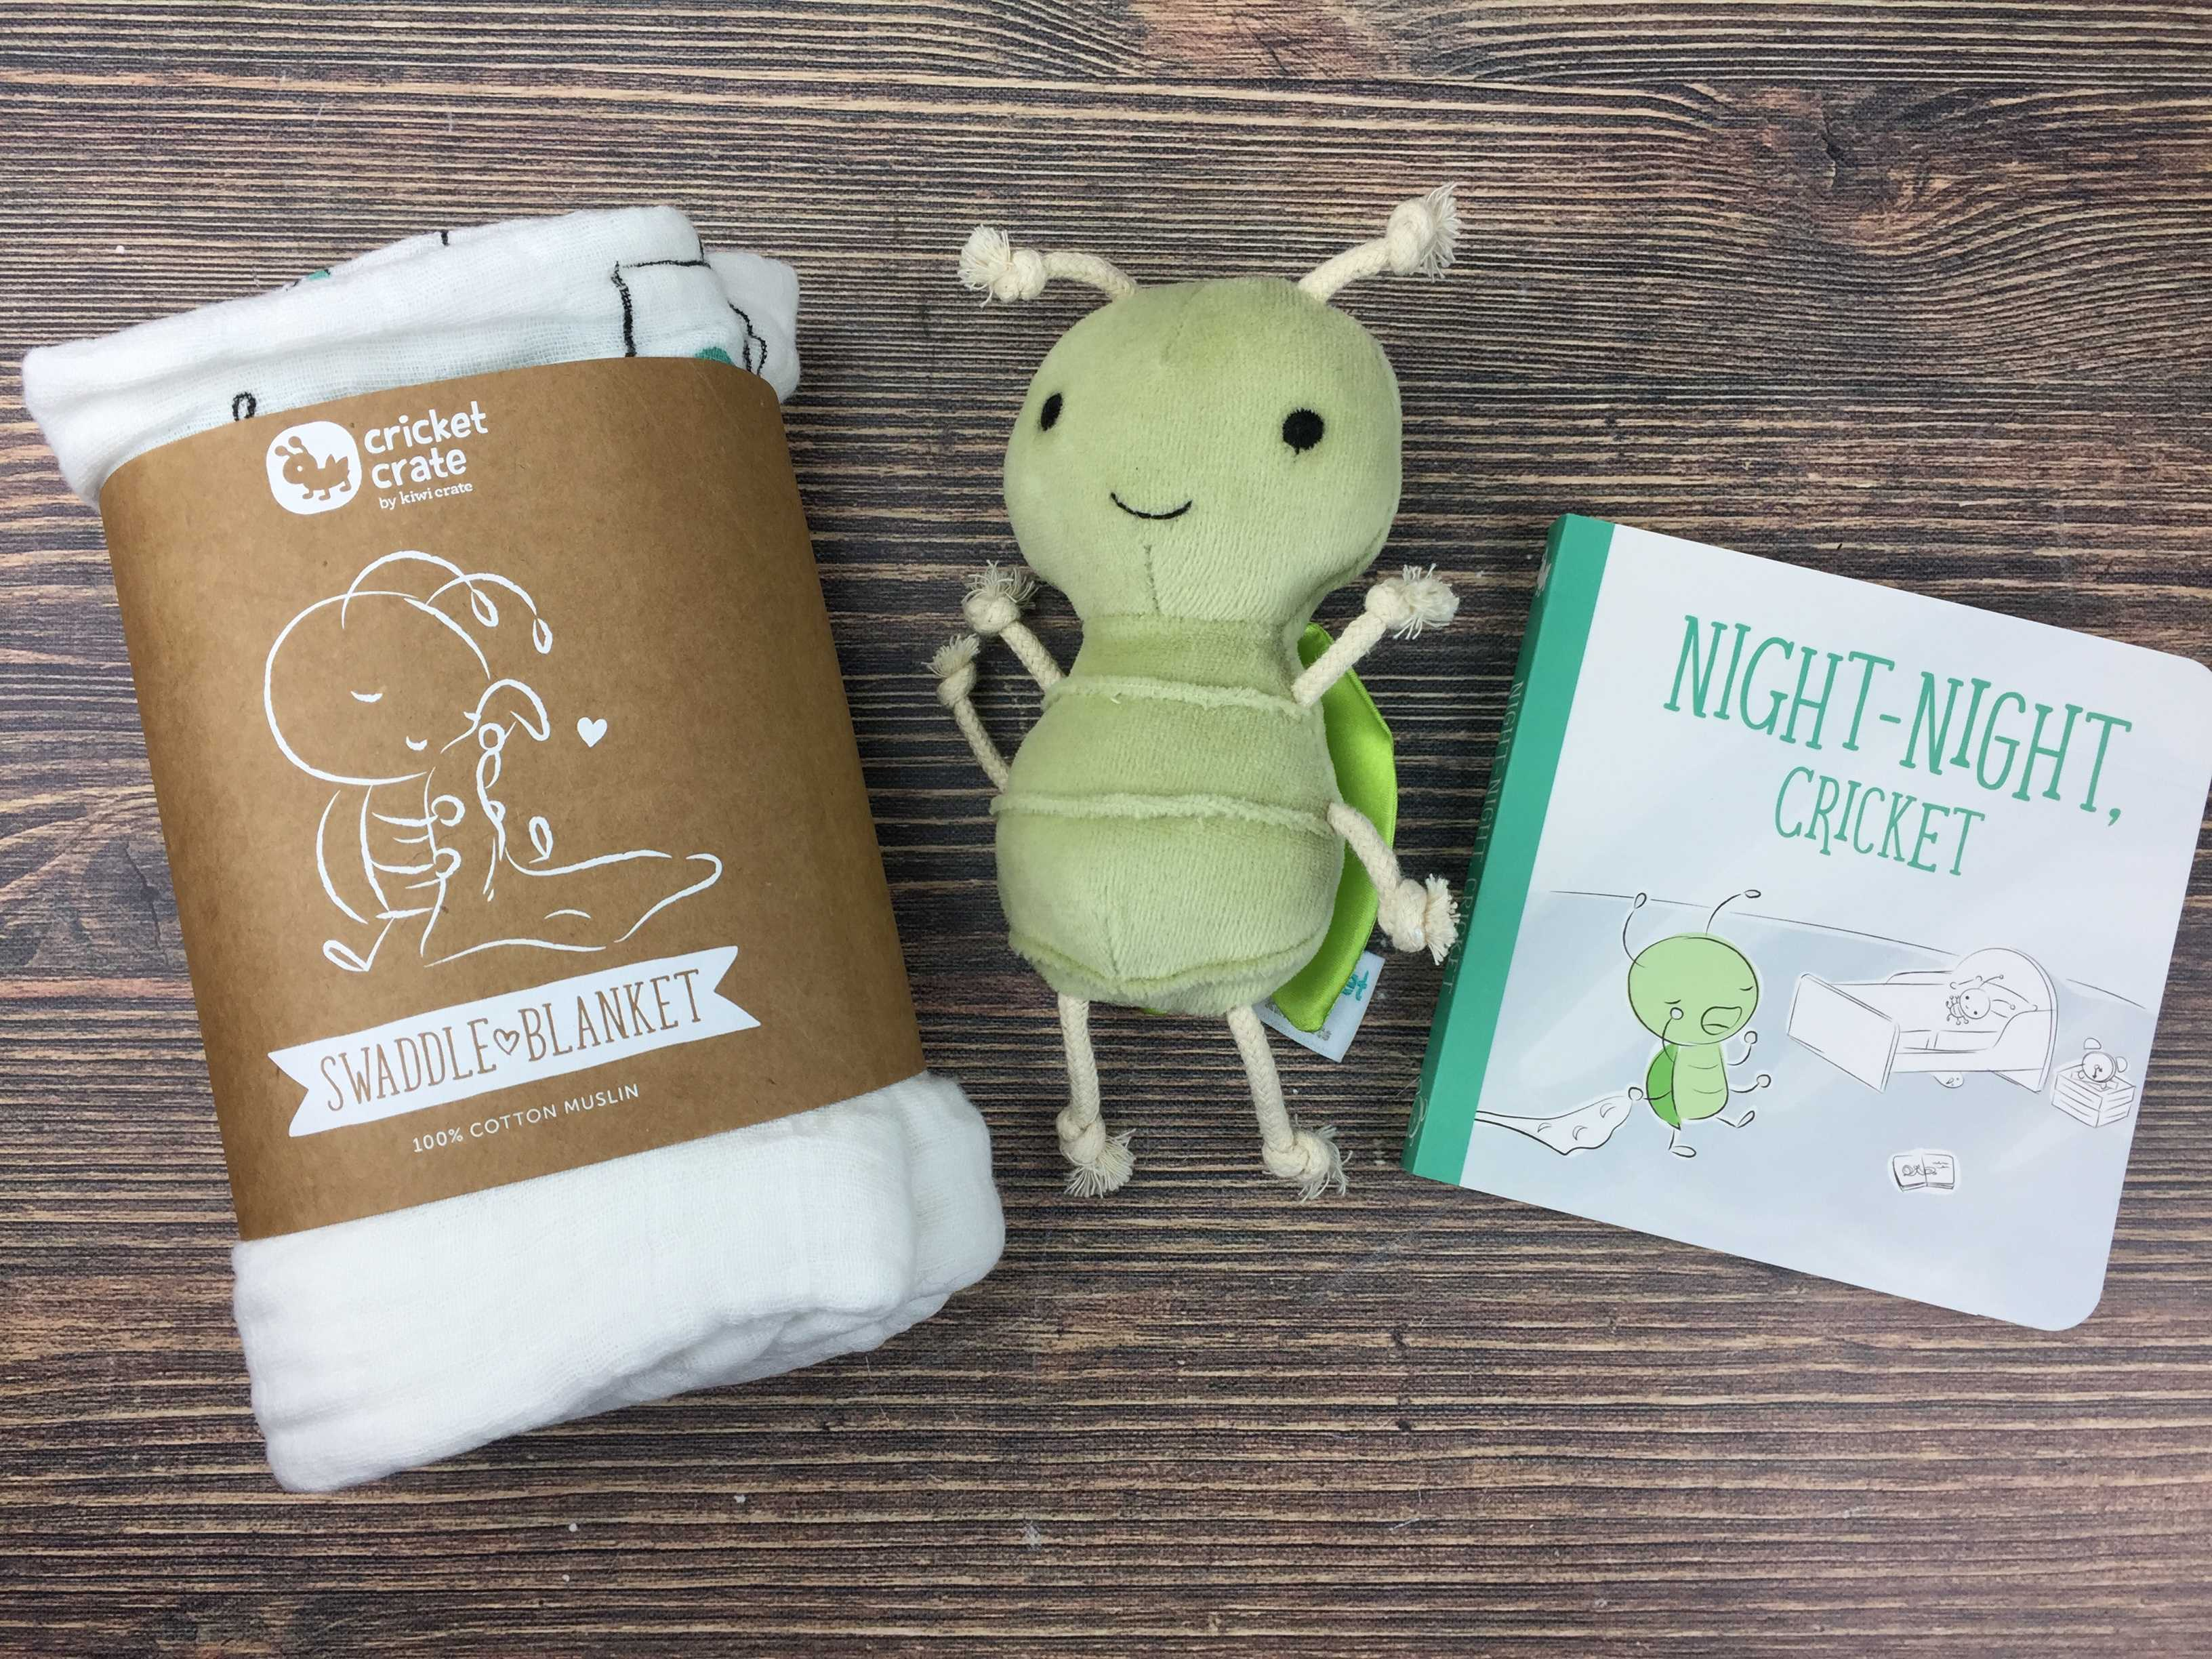 Cricket Crate November 2016 Subscription Box Review + Coupon!